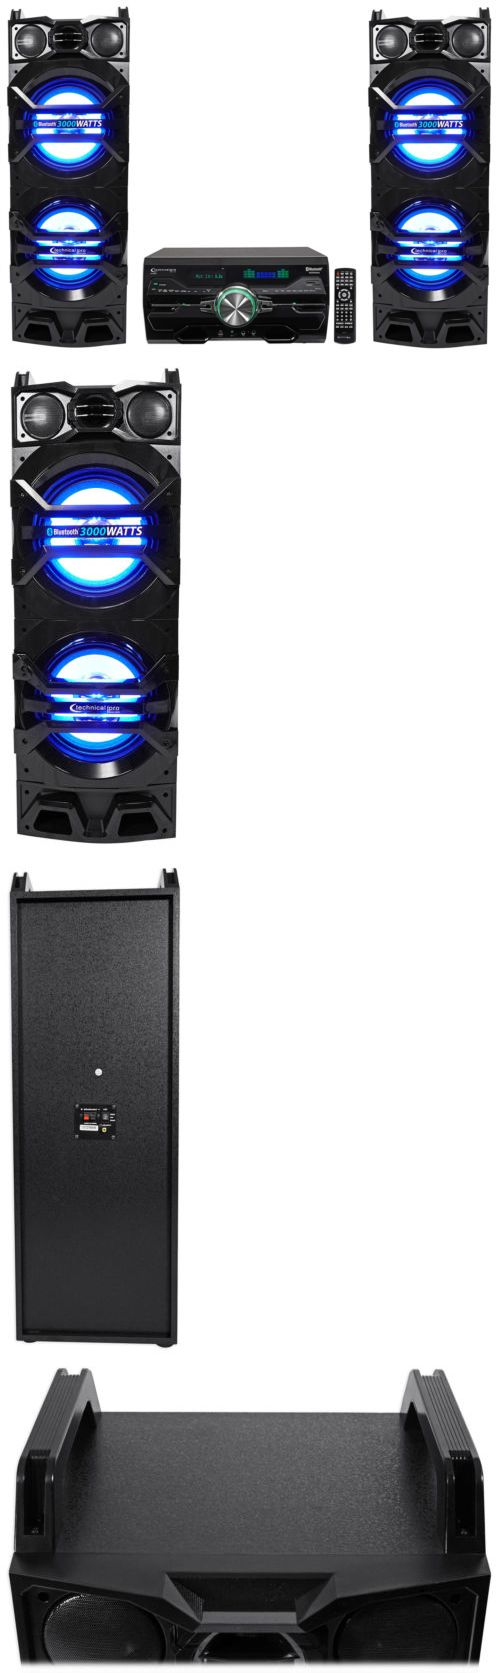 Home Theater Systems: (2) Technical Pro Dual 10 1500W Speakers W Led Lights + Dvd Receiver Amplifier -> BUY IT NOW ONLY: $399.95 on eBay!